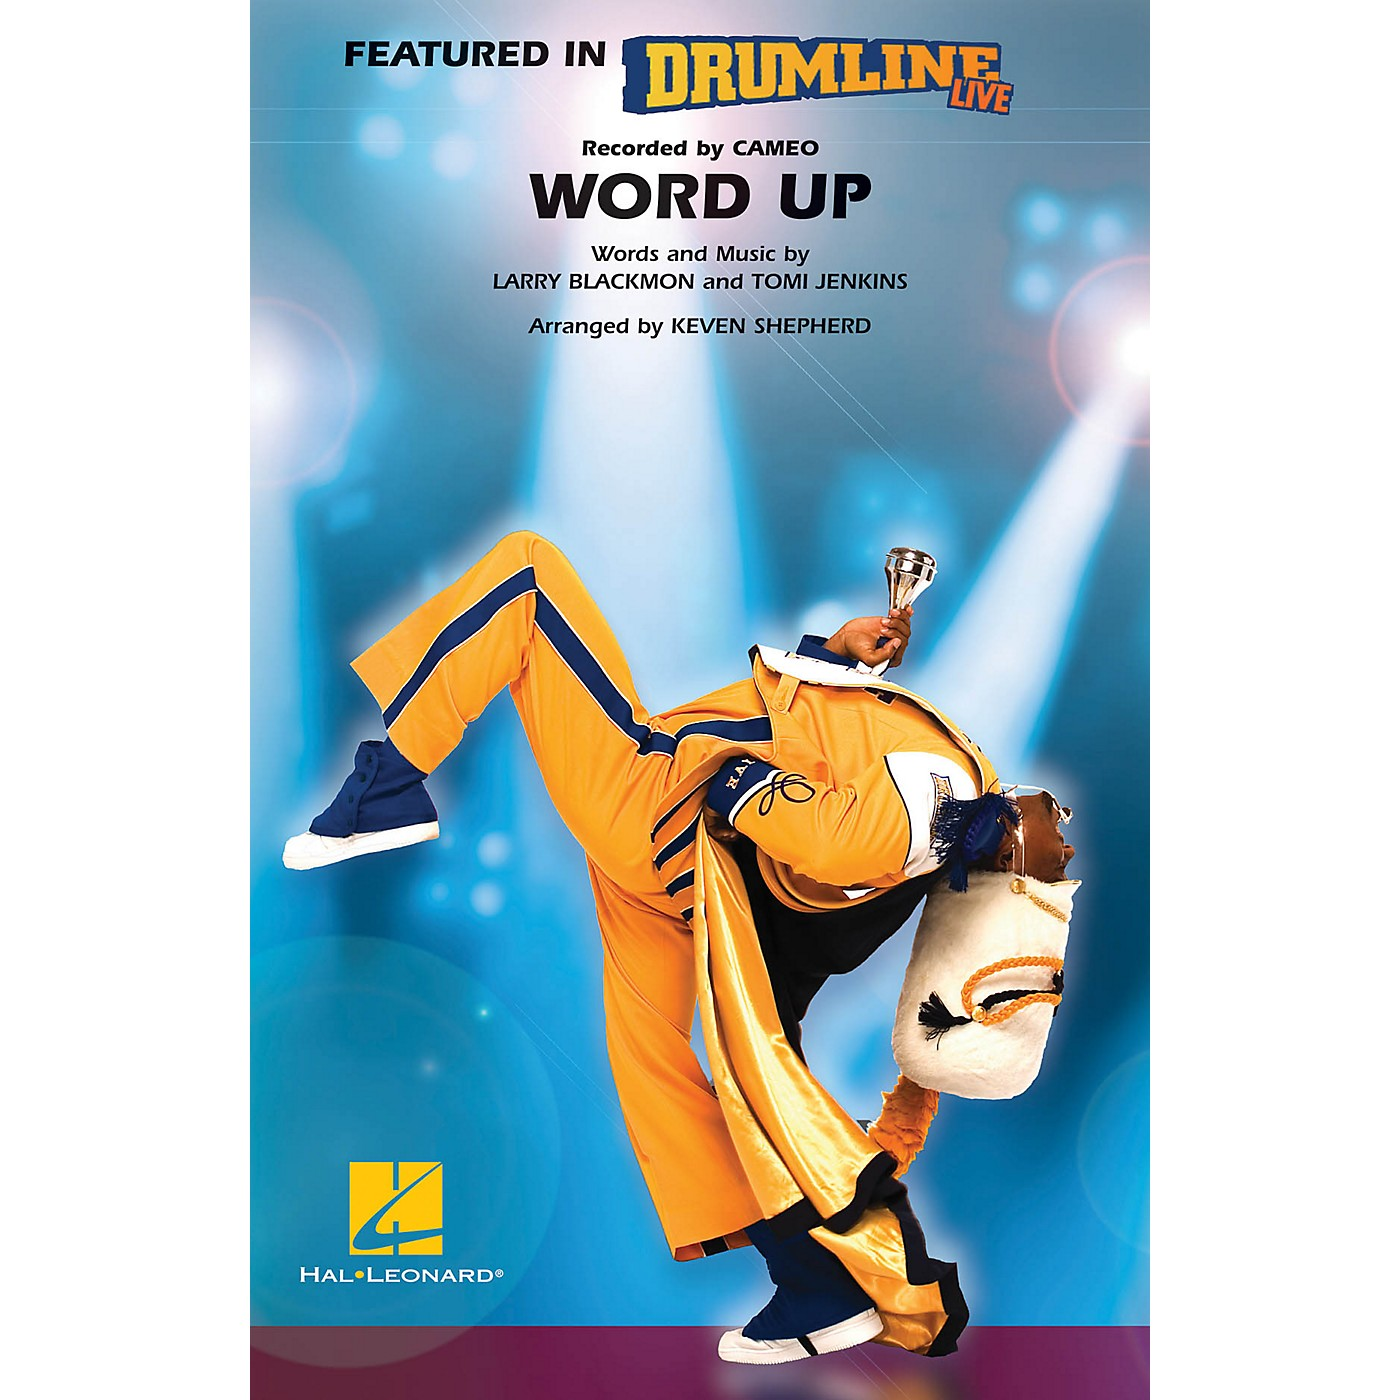 Hal Leonard Word Up (Drumline Live) Marching Band Level 4-5 Arranged by Keven Shepherd thumbnail